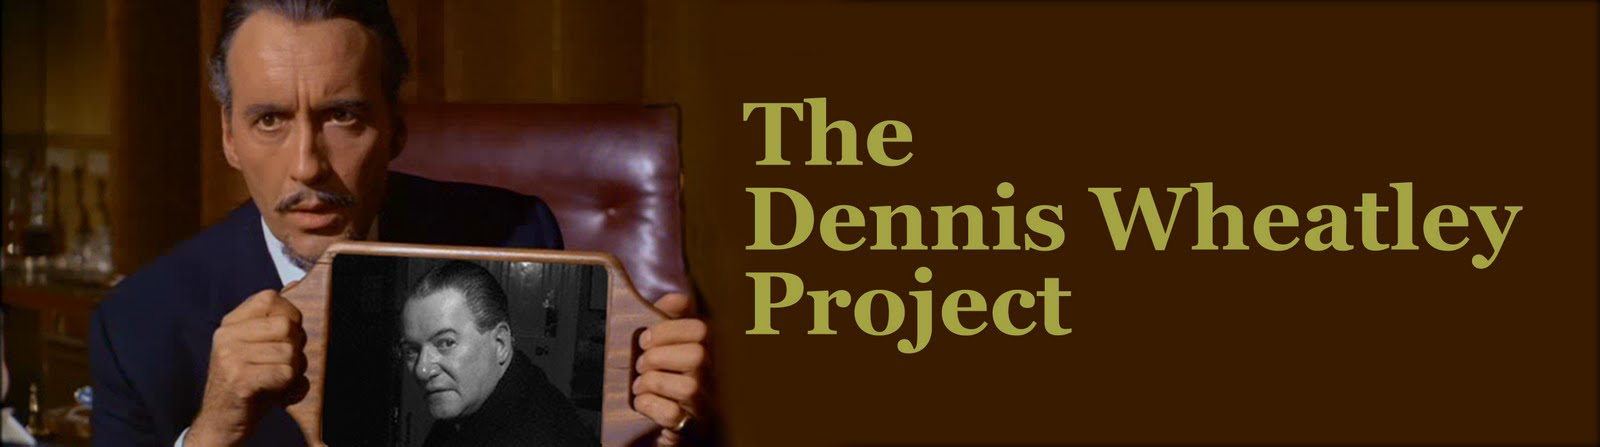 The Dennis Wheatley Project